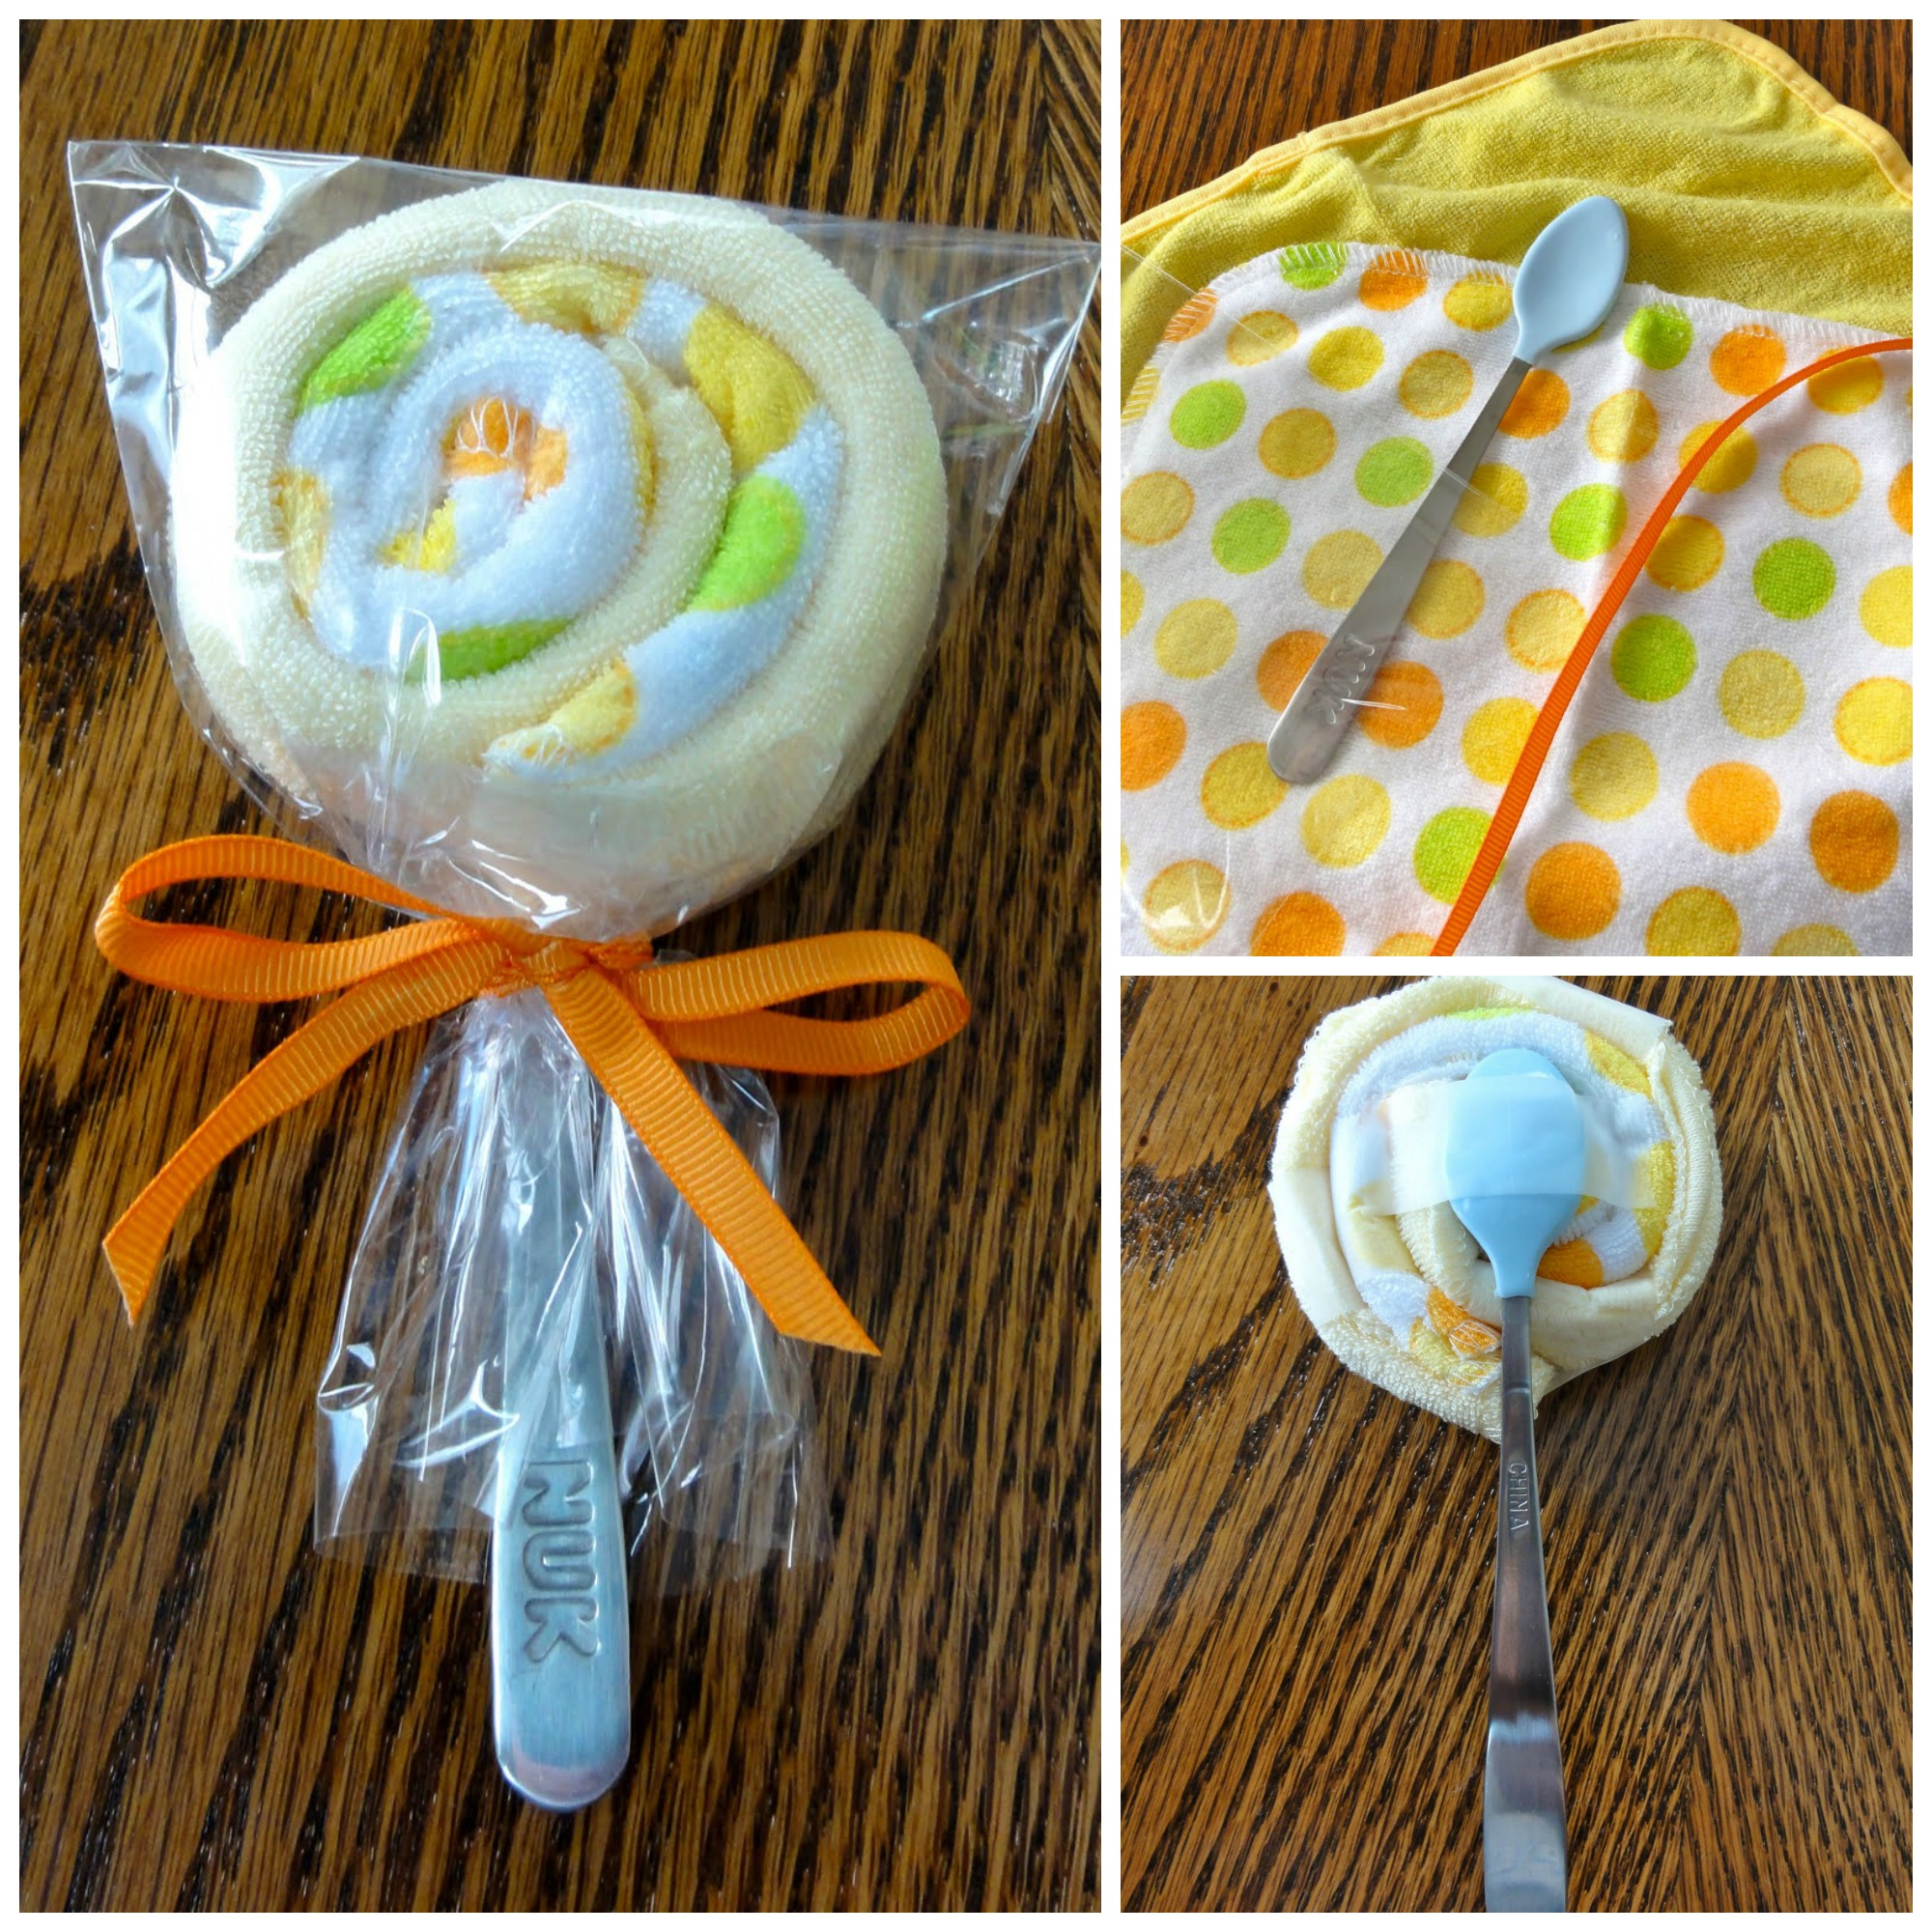 lollipop baby washcloth spoon, baby shower ideas, cute baby shower, best baby shower ideas, baby shower cake, fun games for baby shower, baby shower food